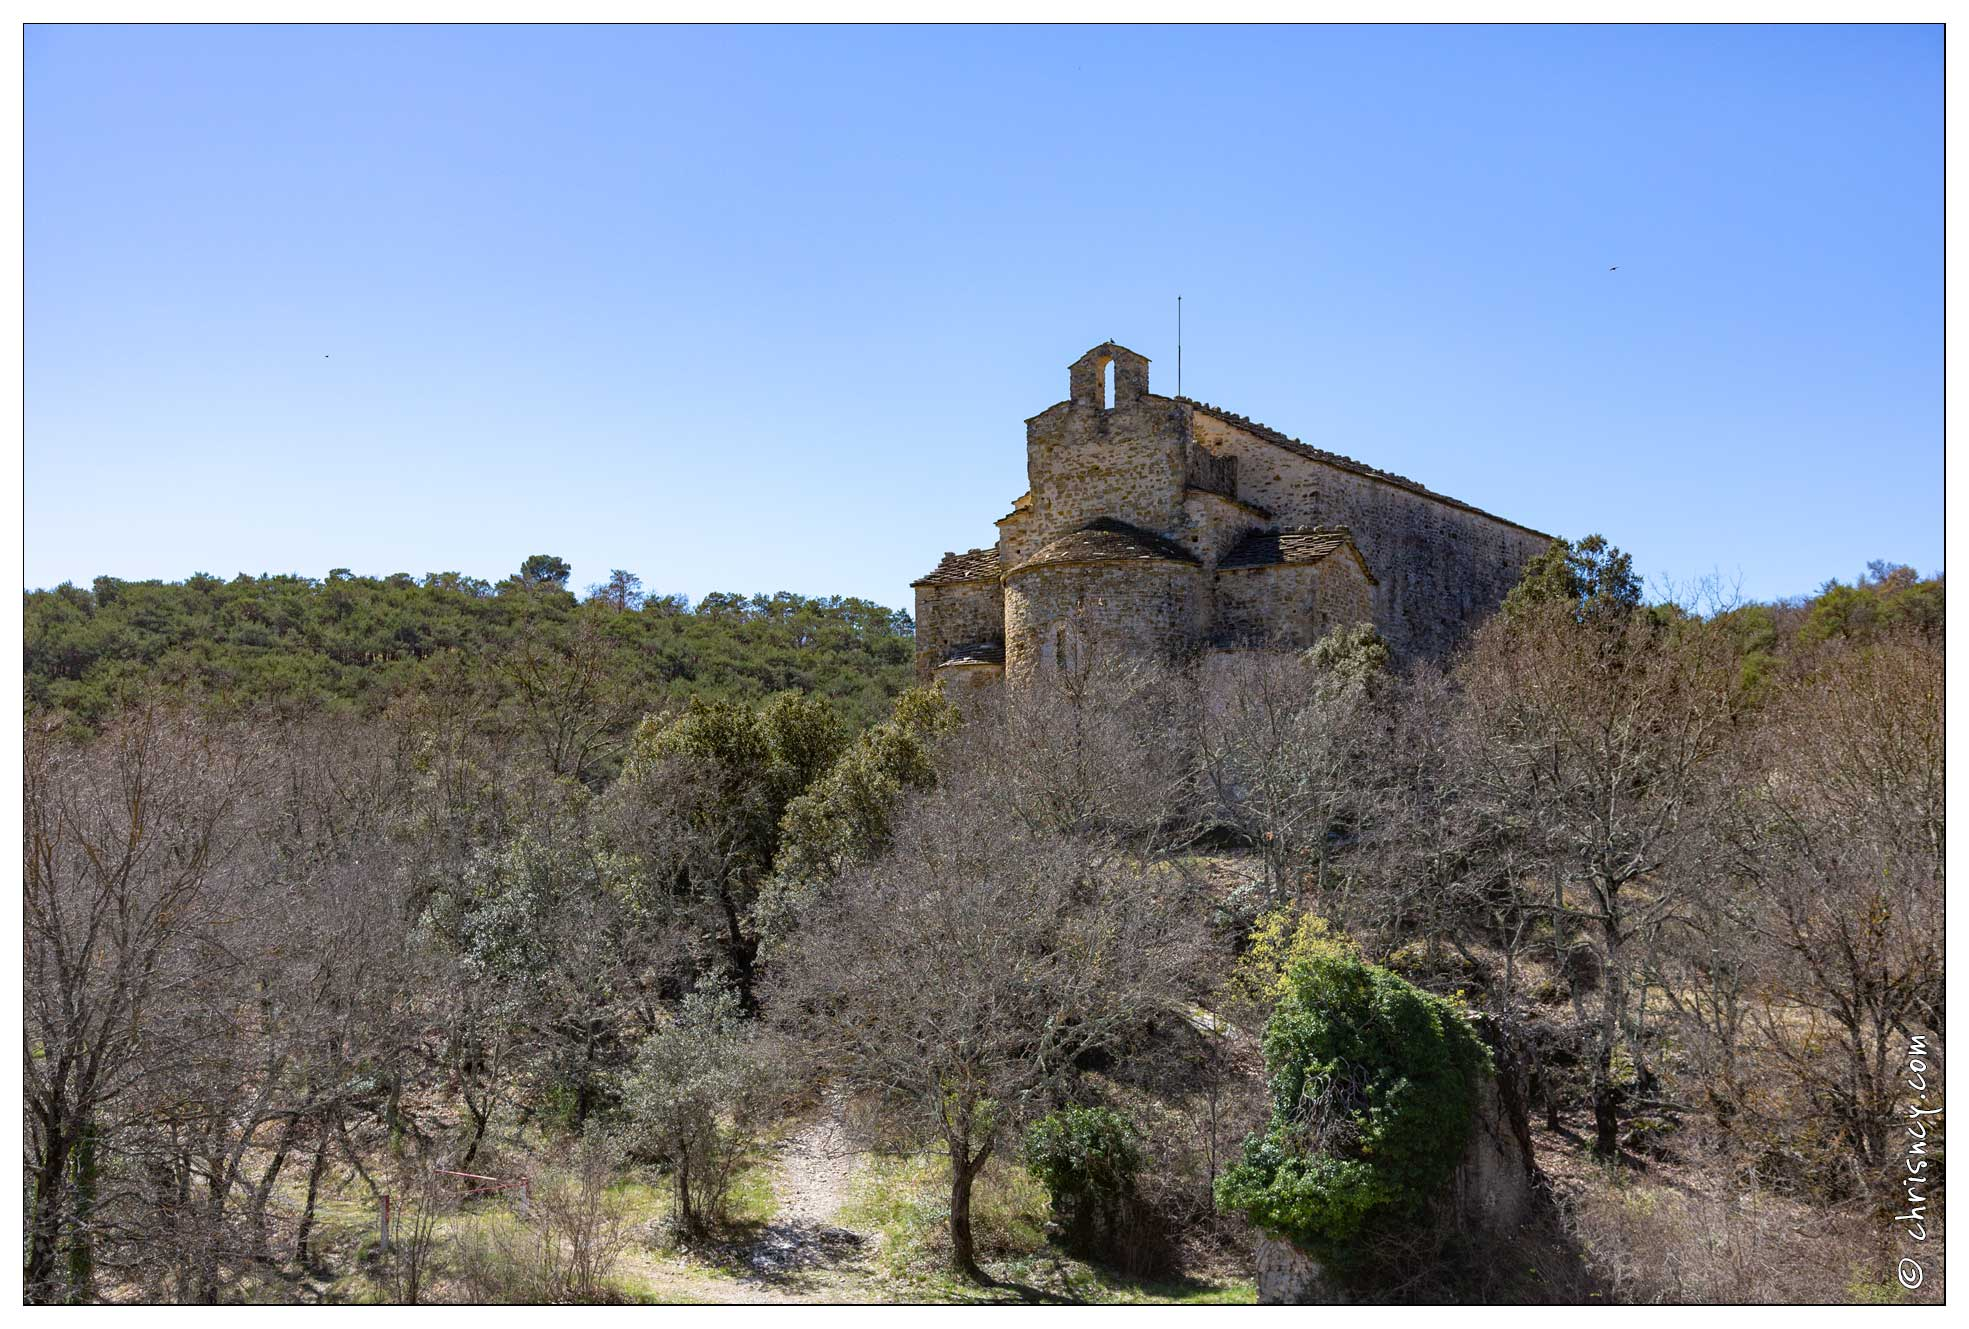 20190405-56 5187-Montfort Chapelle Saint Donat